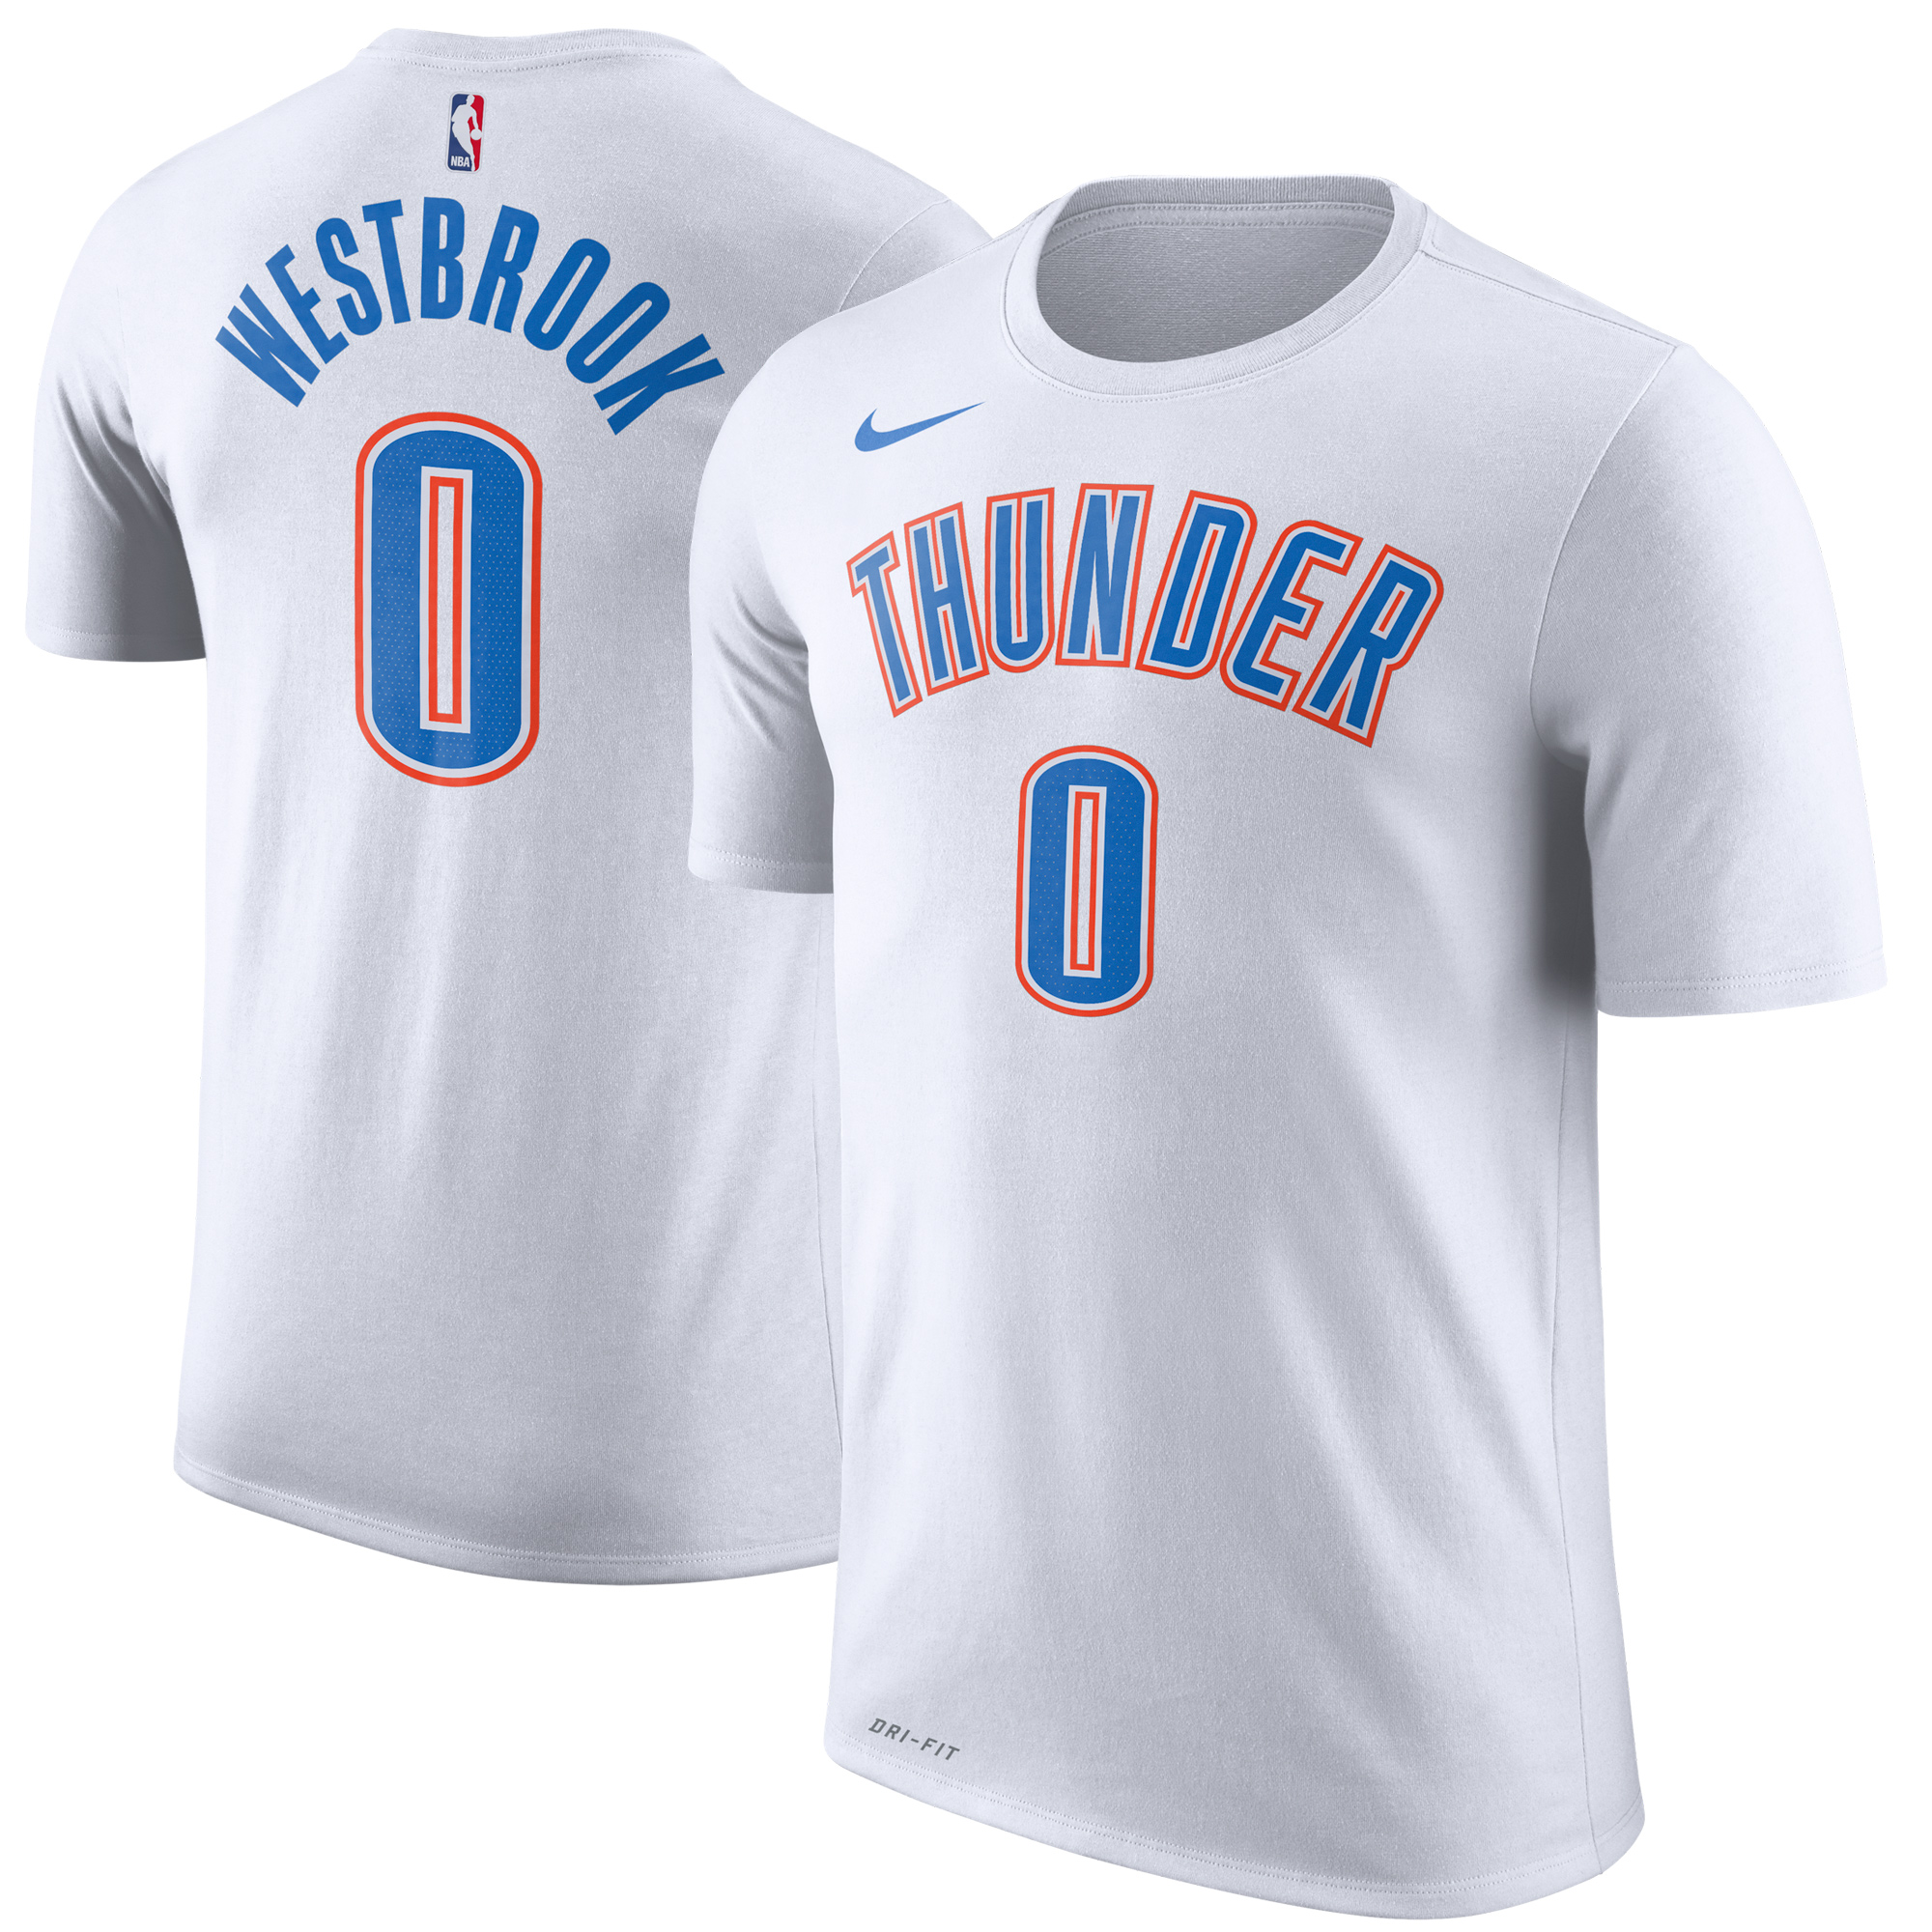 Russell Westbrook Oklahoma City Thunder Nike Name & Number Performance T-Shirt - White